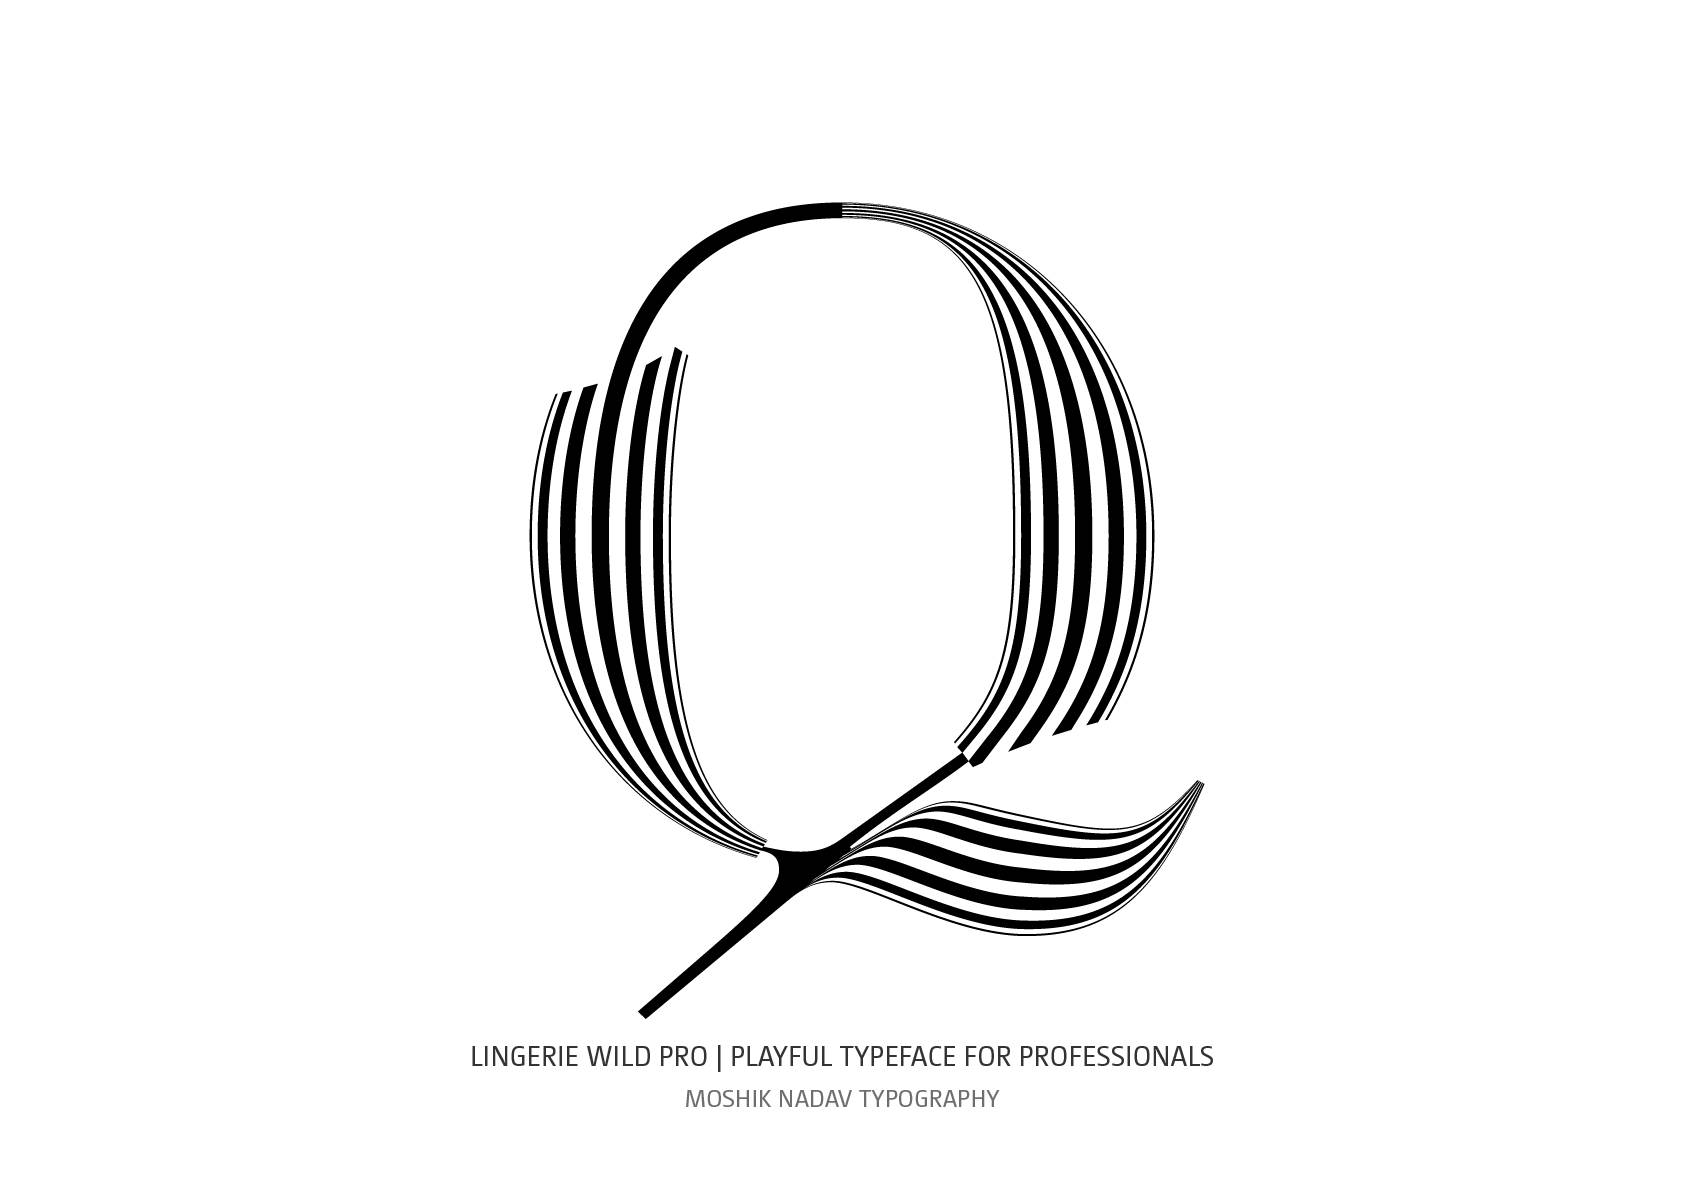 Unique Q designed with Lingerie Wild Pro Typeface by Moshik Nadav Typographer based in NYC